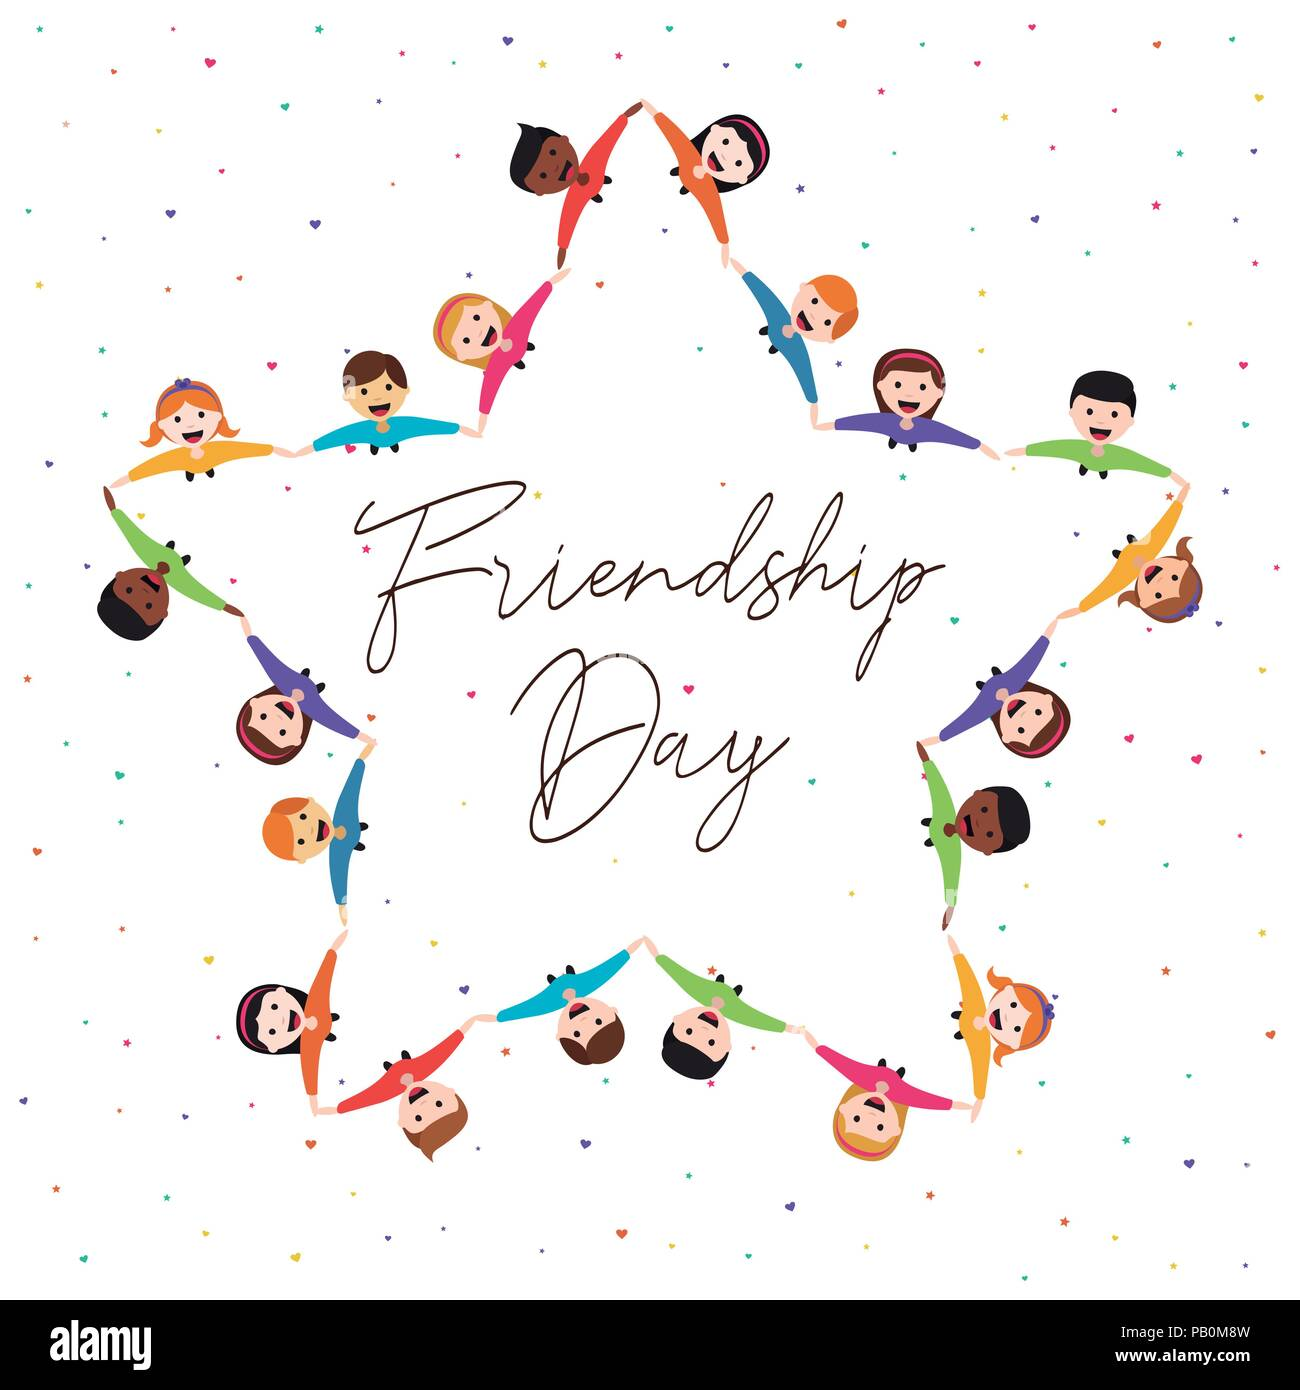 Happy friendship day greeting card illustration of diverse kid group happy friendship day greeting card illustration of diverse kid group in star shape holding hands from top view angle friend love concept for special m4hsunfo